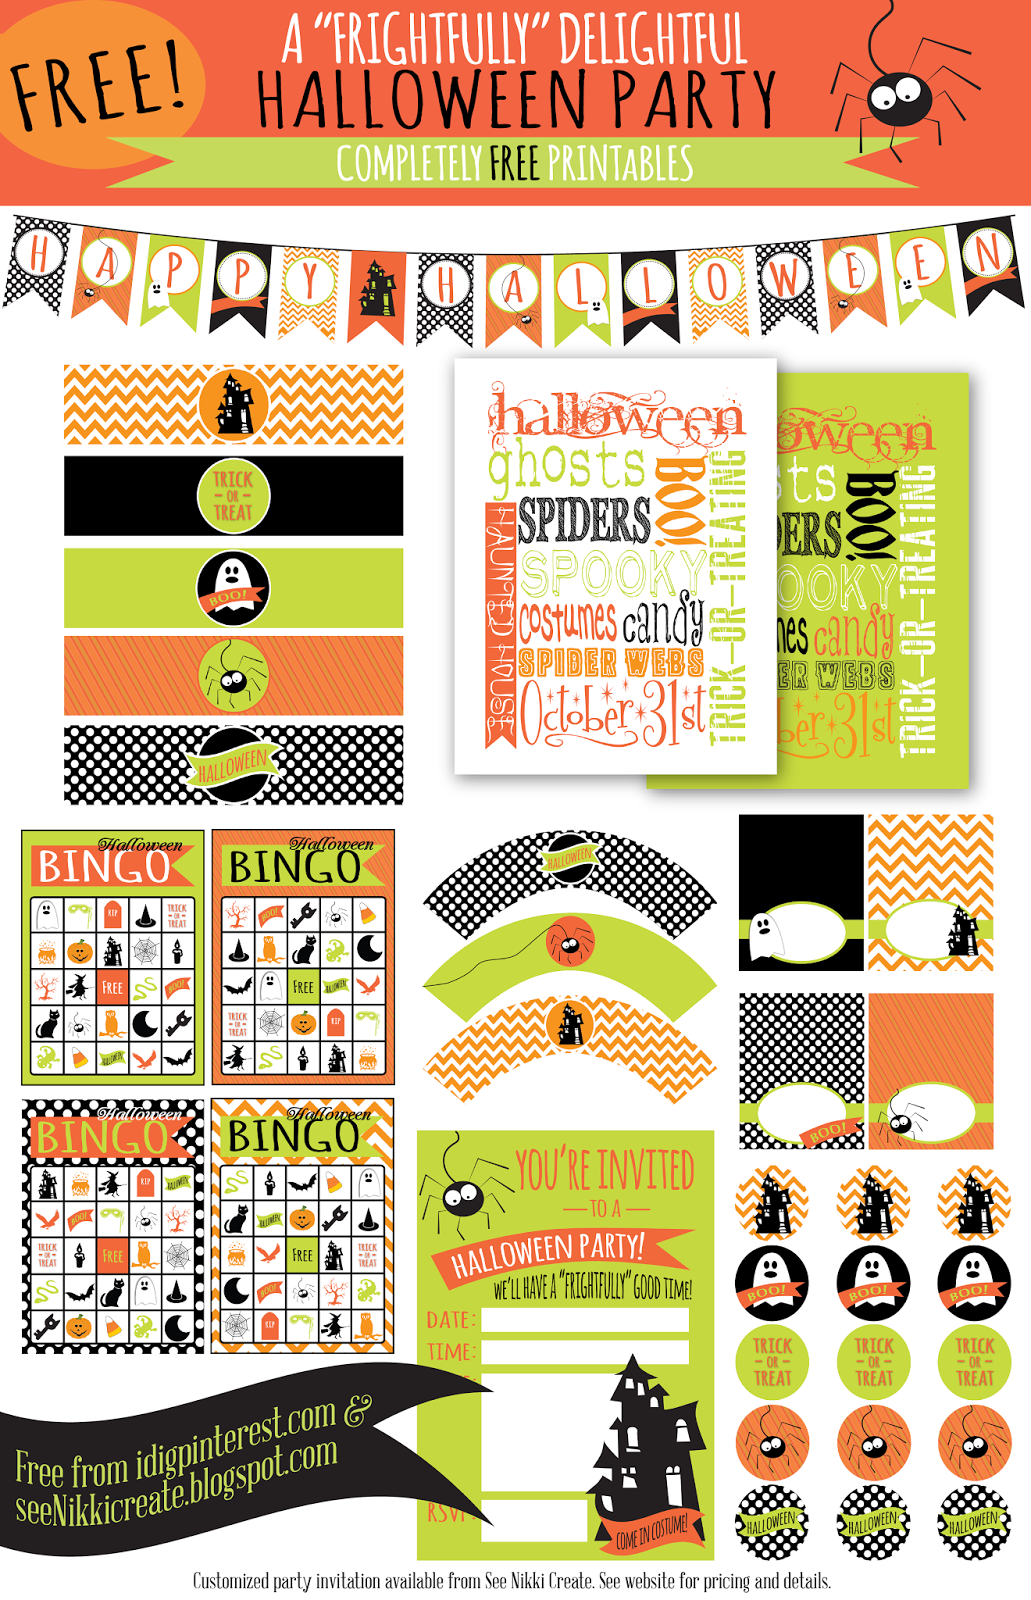 Free Printables A Frightfully Delightful Halloween